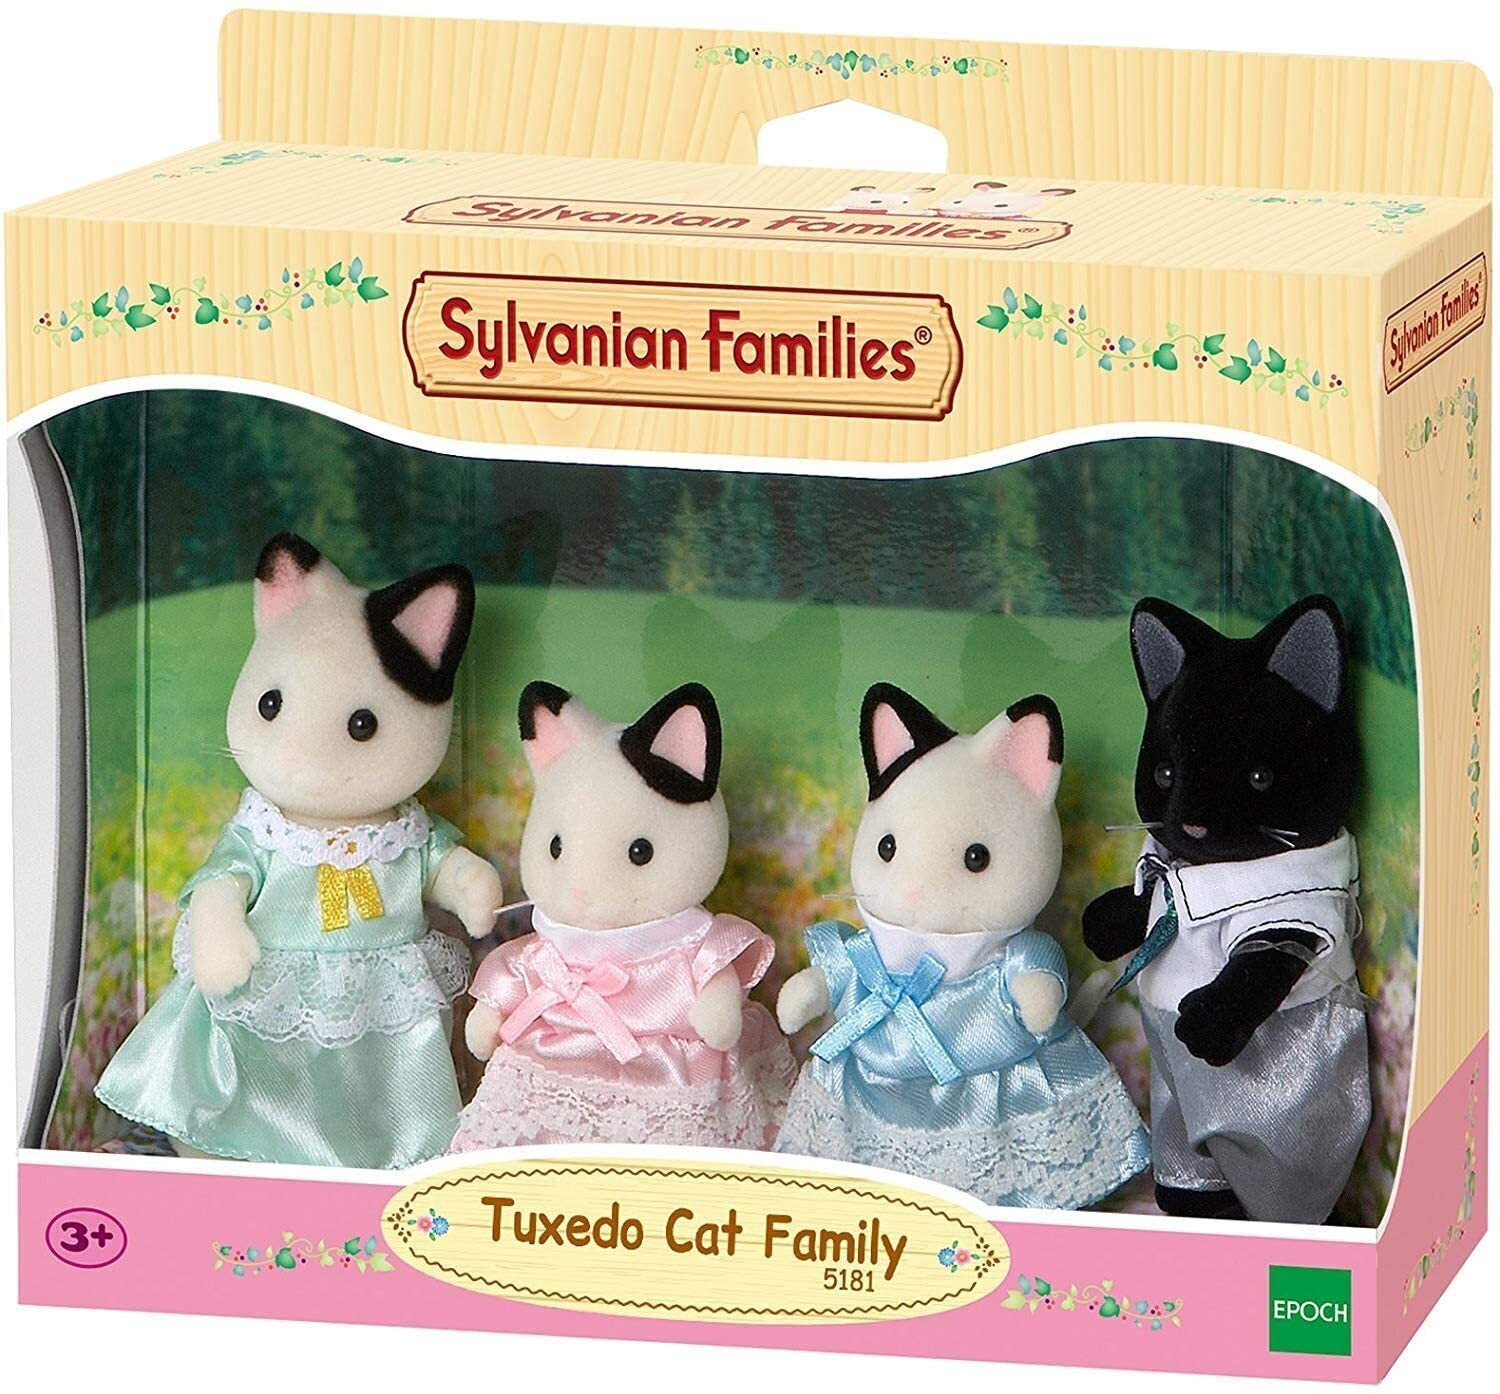 Sylvanian Families 5181 Tuxedo Cat Family in box